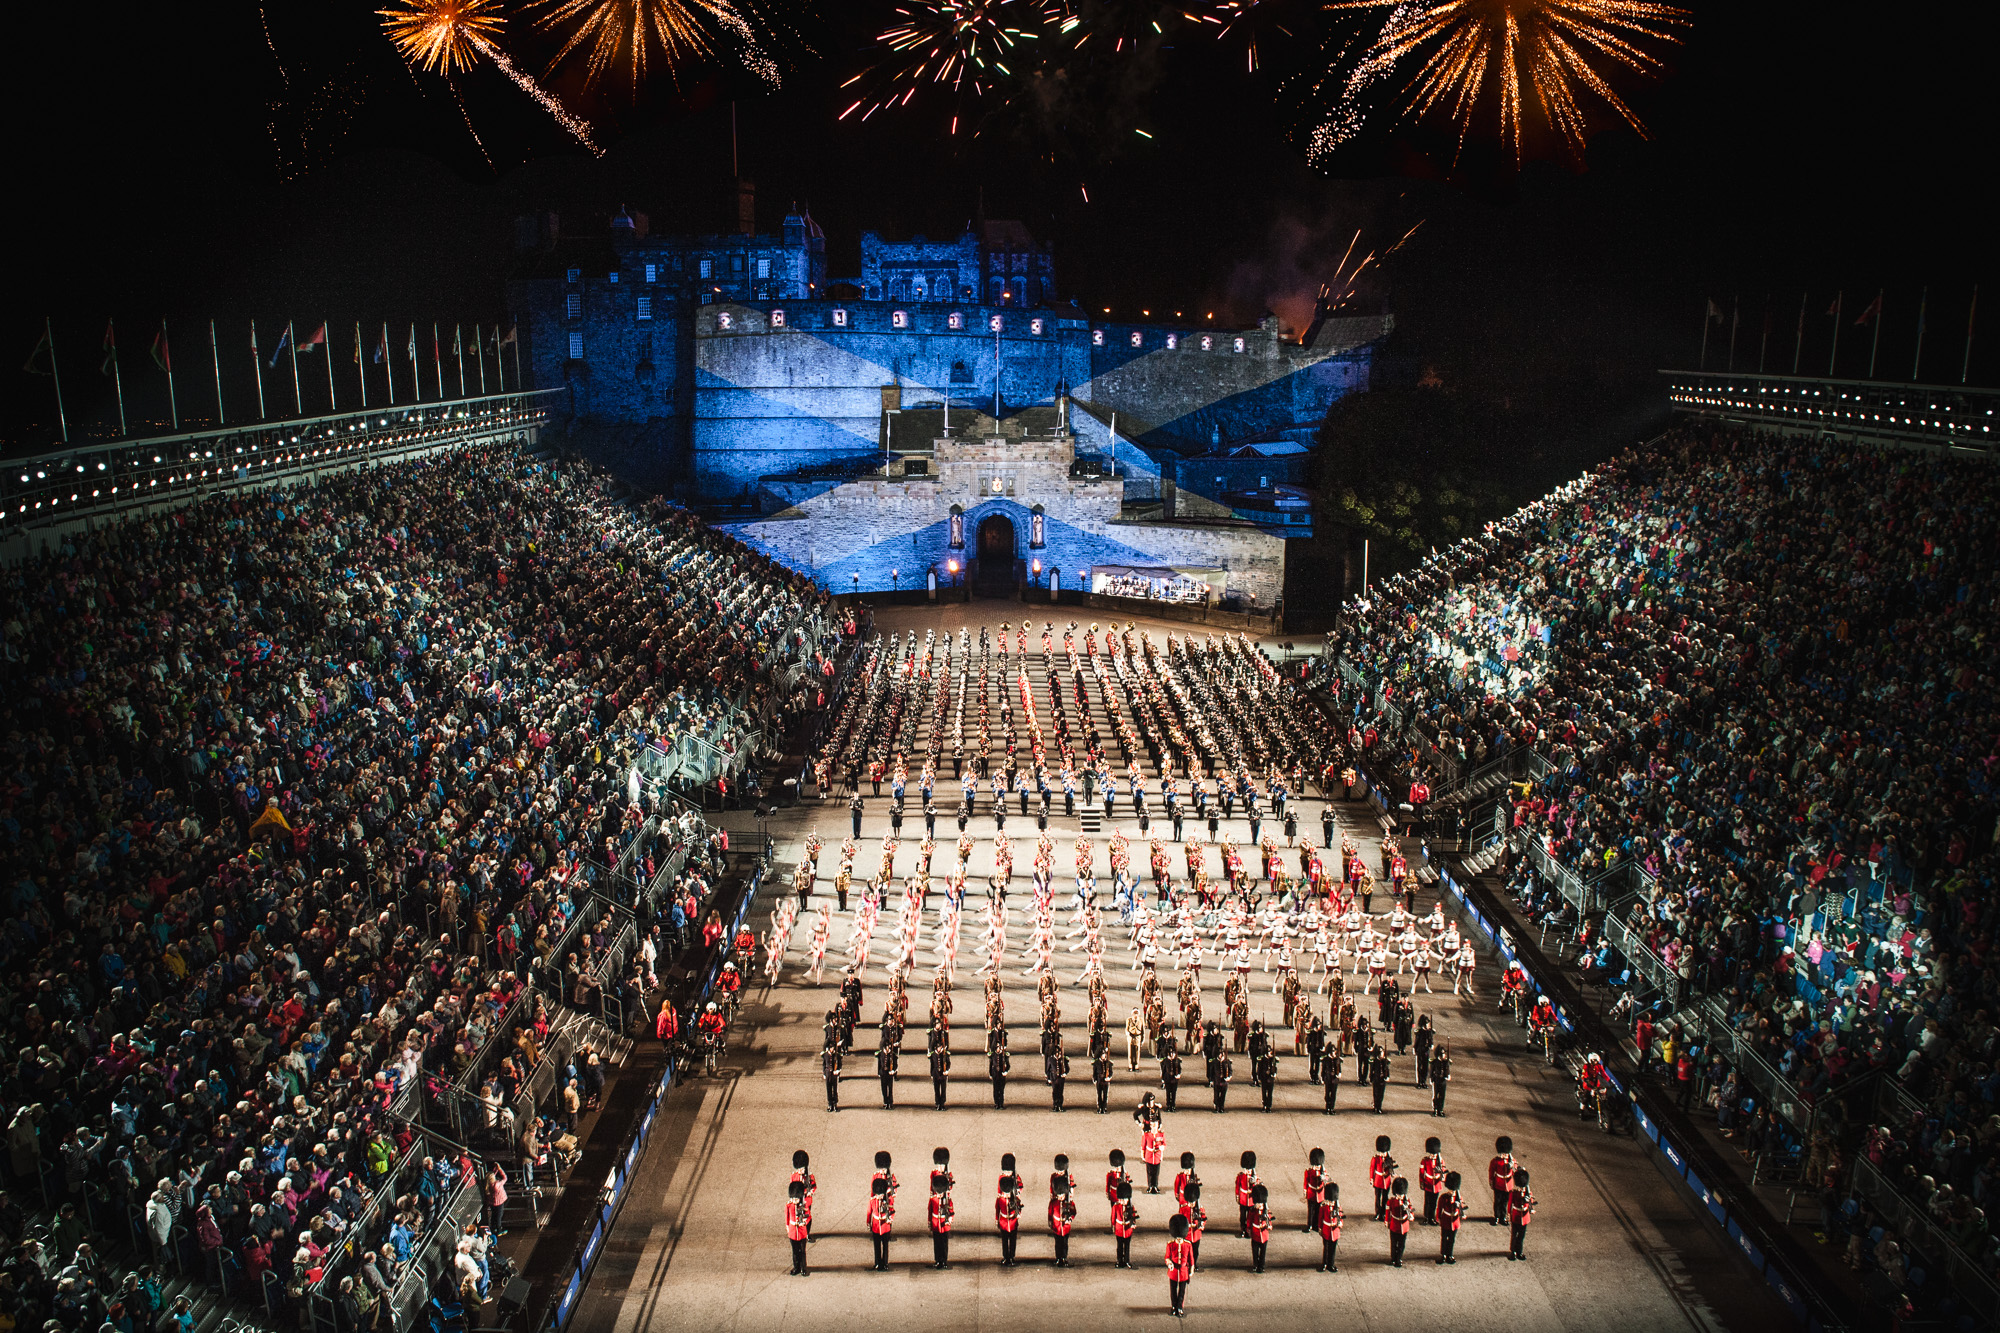 The royal edinburgh military tattoo 2017 mw travel talk for Royal edinburgh military tattoo